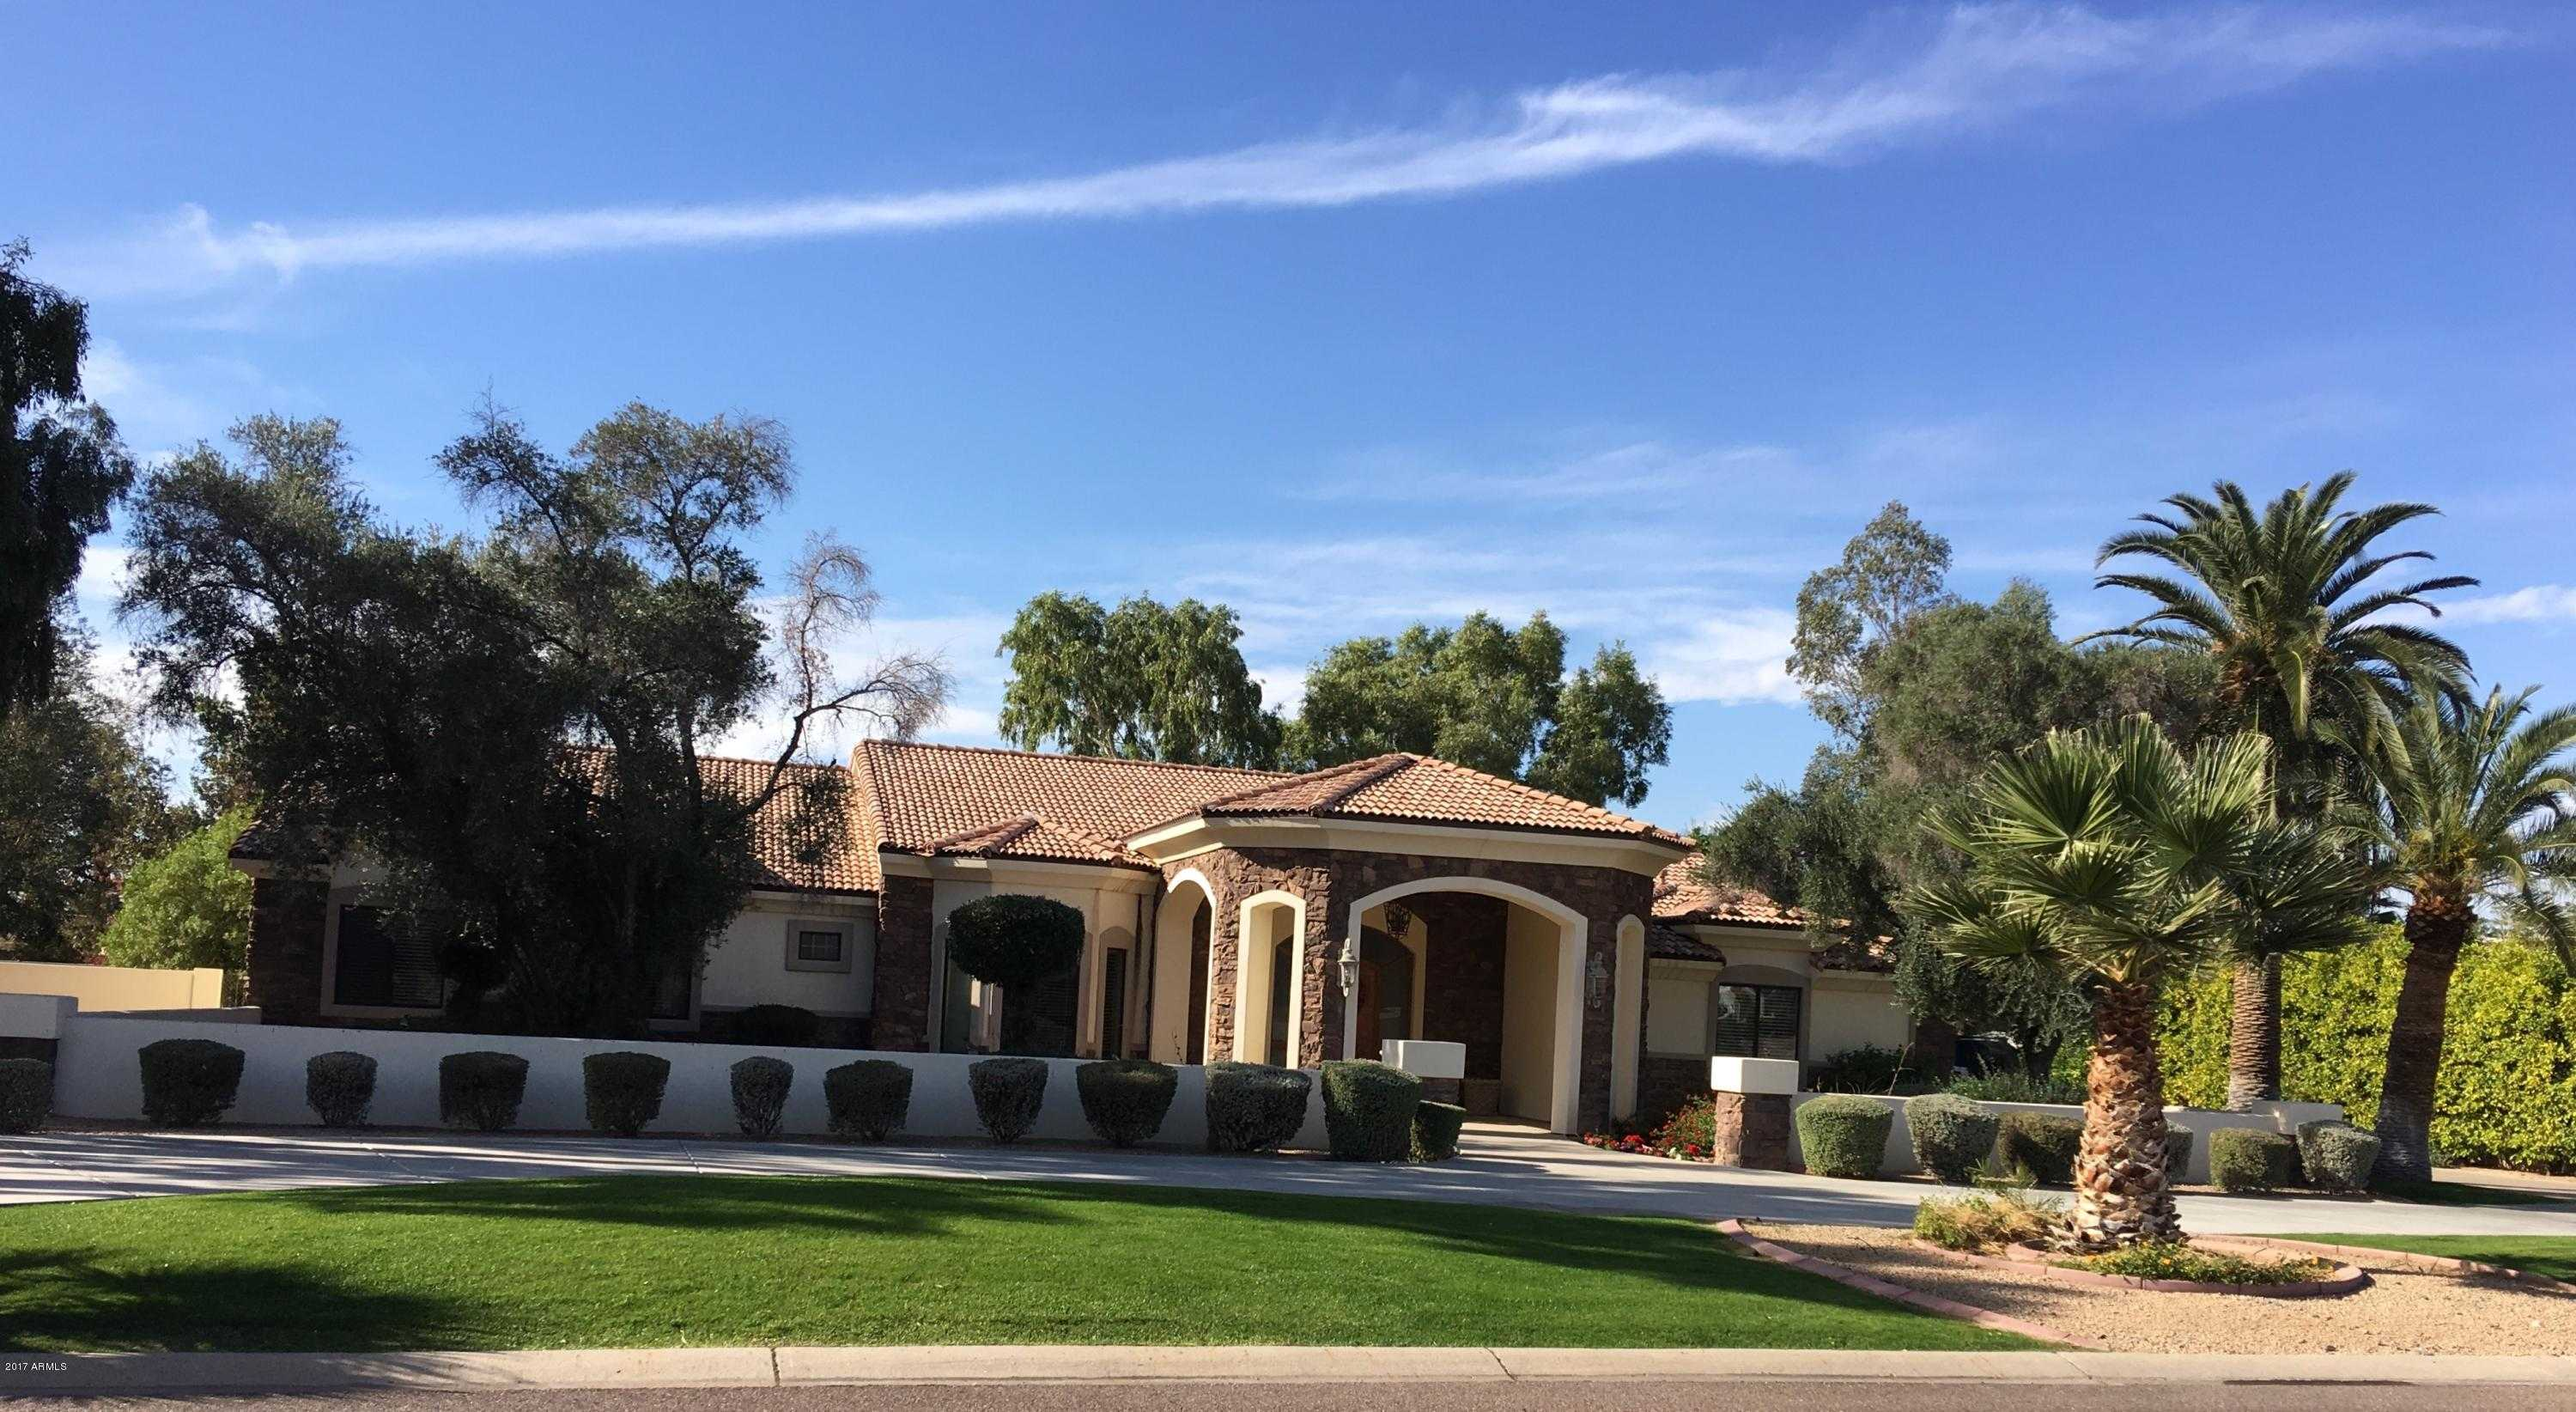 $1,625,000 - 4Br/4Ba - Home for Sale in Country Club Acres, Paradise Valley